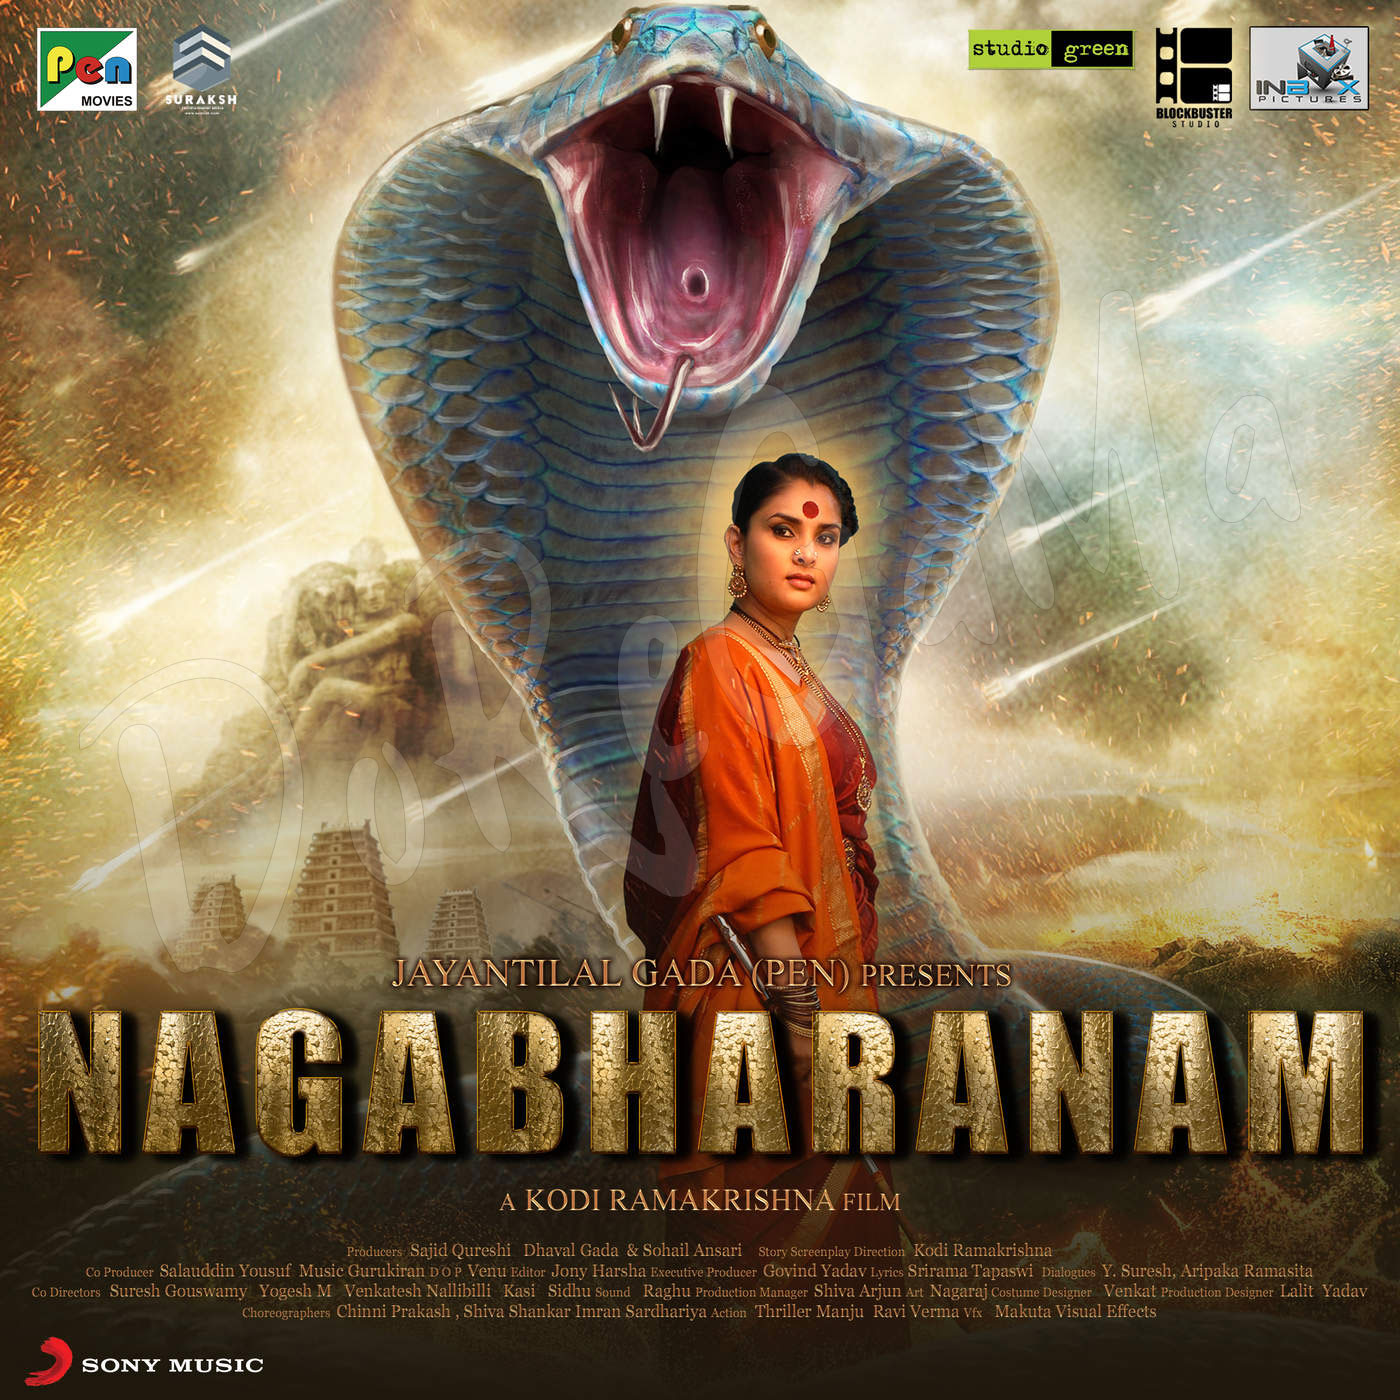 Nagabharanam-2016-Original-CD-Front-Cover-Poster-Wallpaper